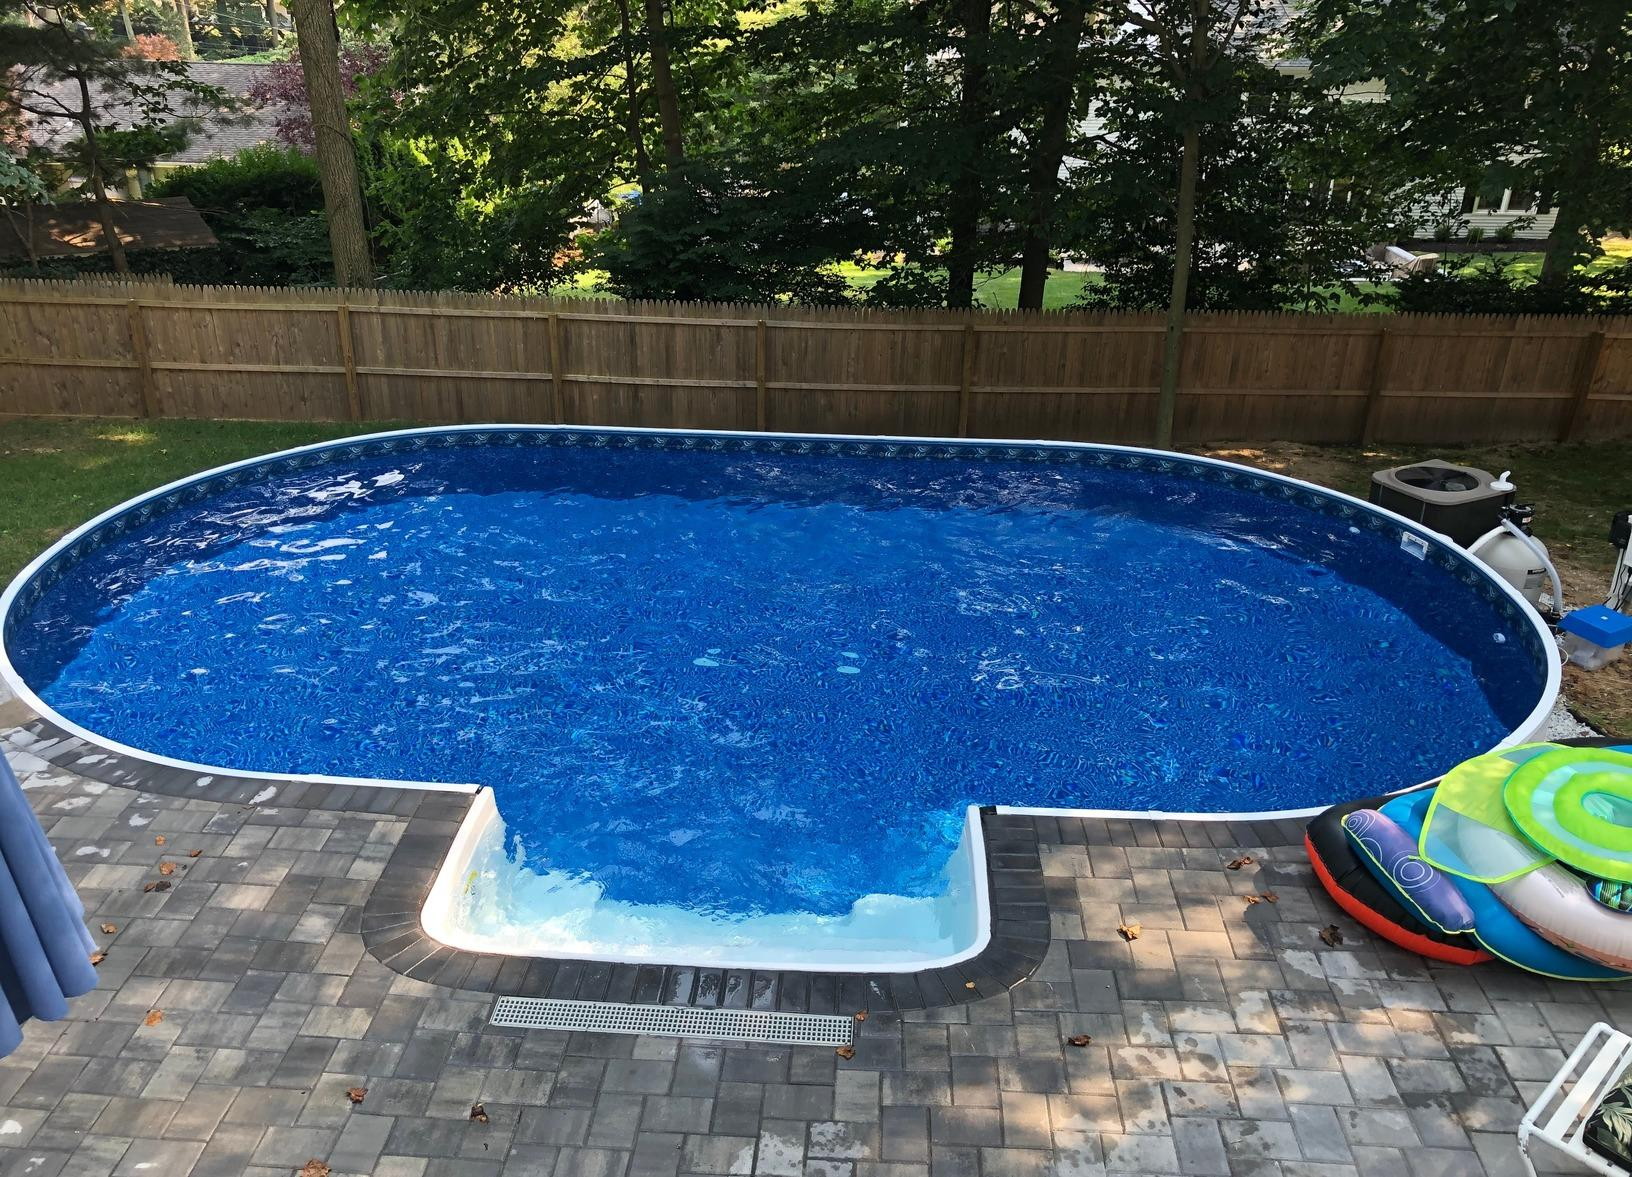 On Ground Radiant Pool Installation in Middletown, NJ - After Photo